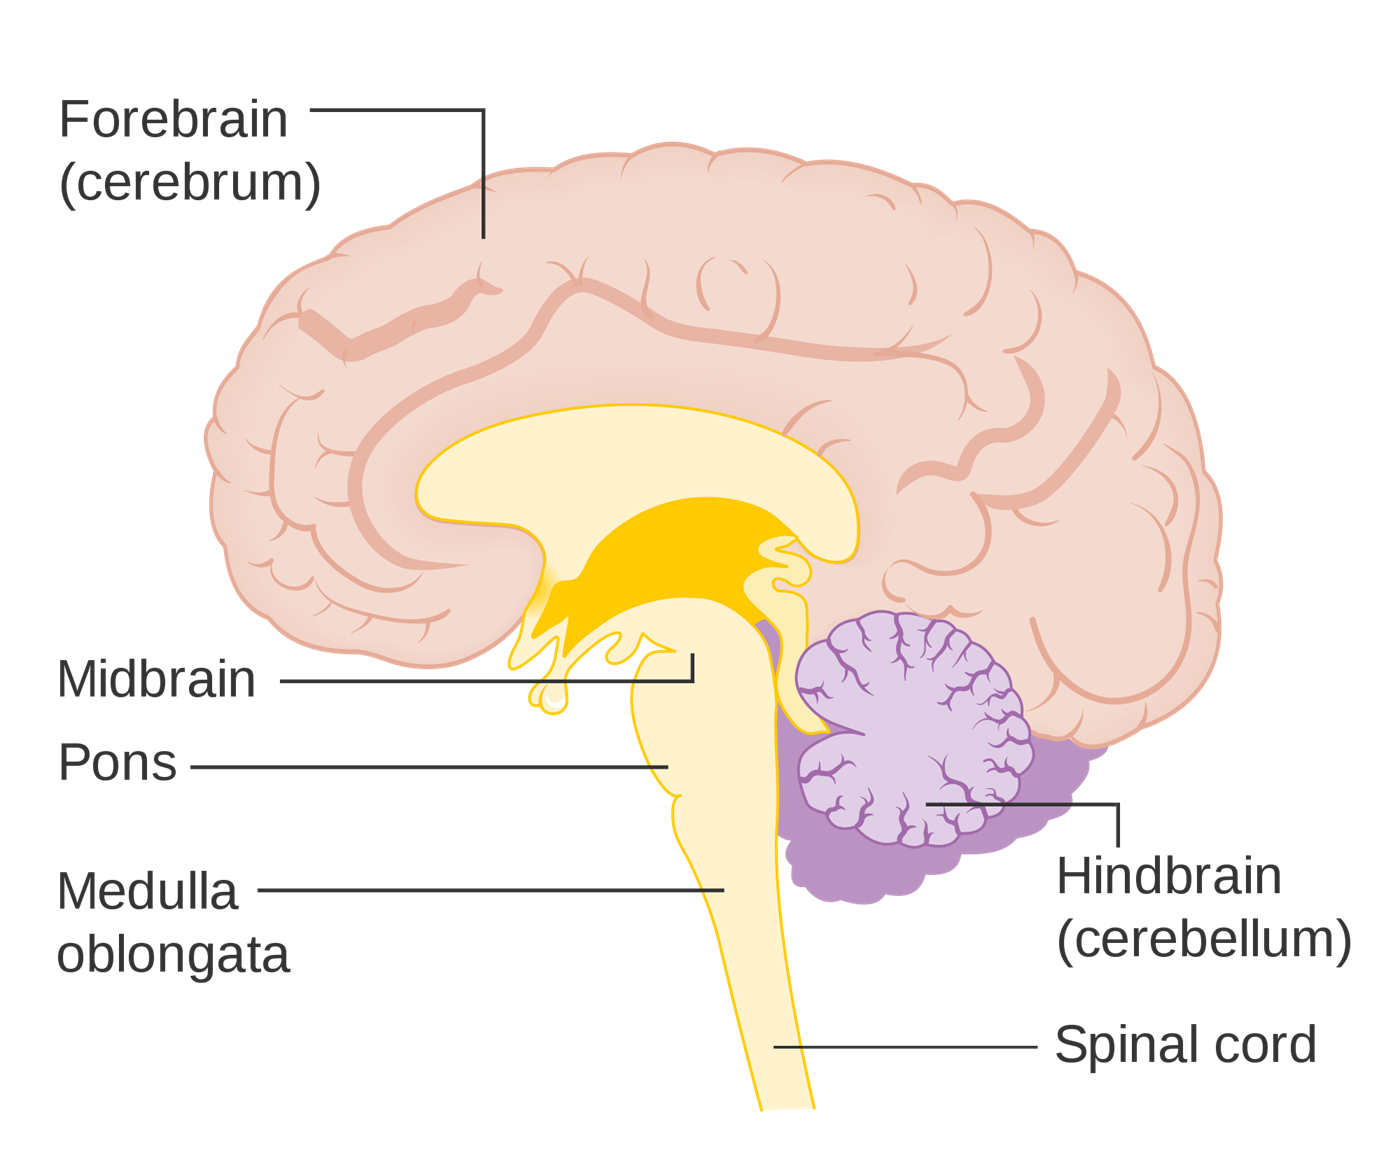 Human Brain Structure And Functions Of Human Brain